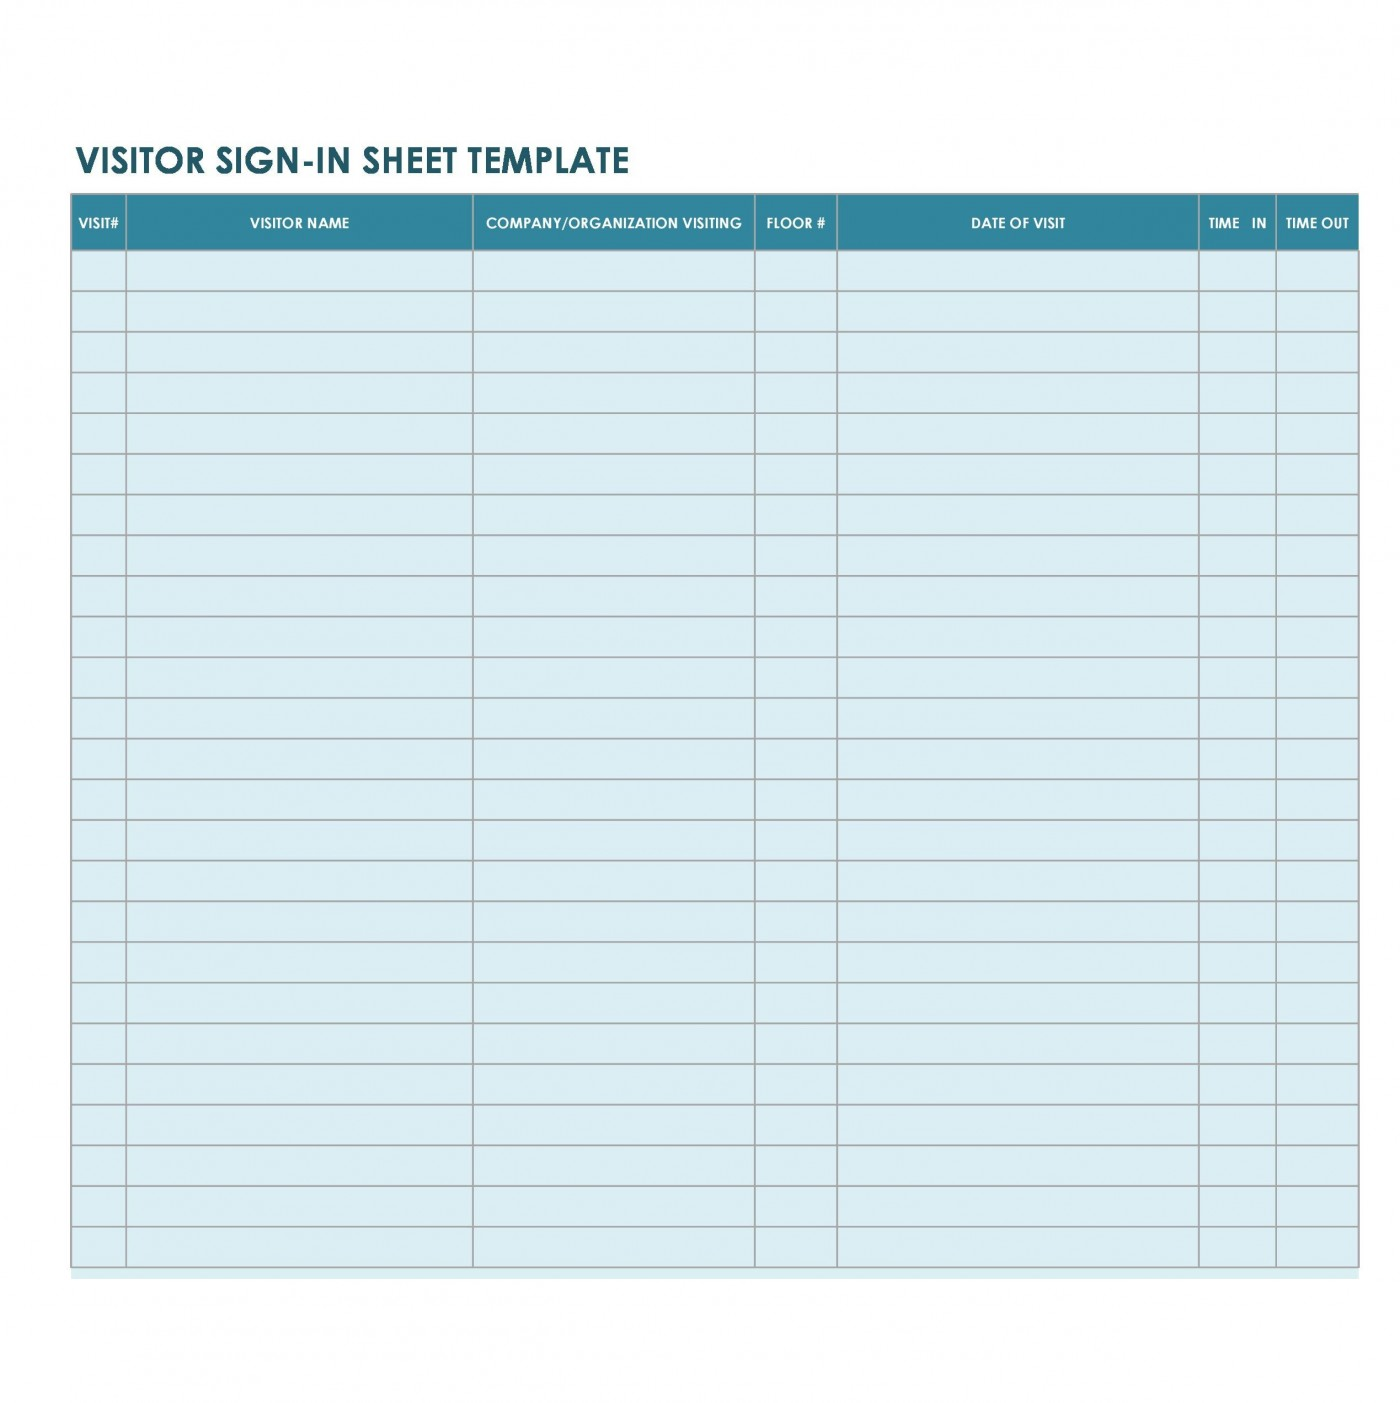 007 Phenomenal Busines Visitor Sign In Sheet Template High Definition 1400